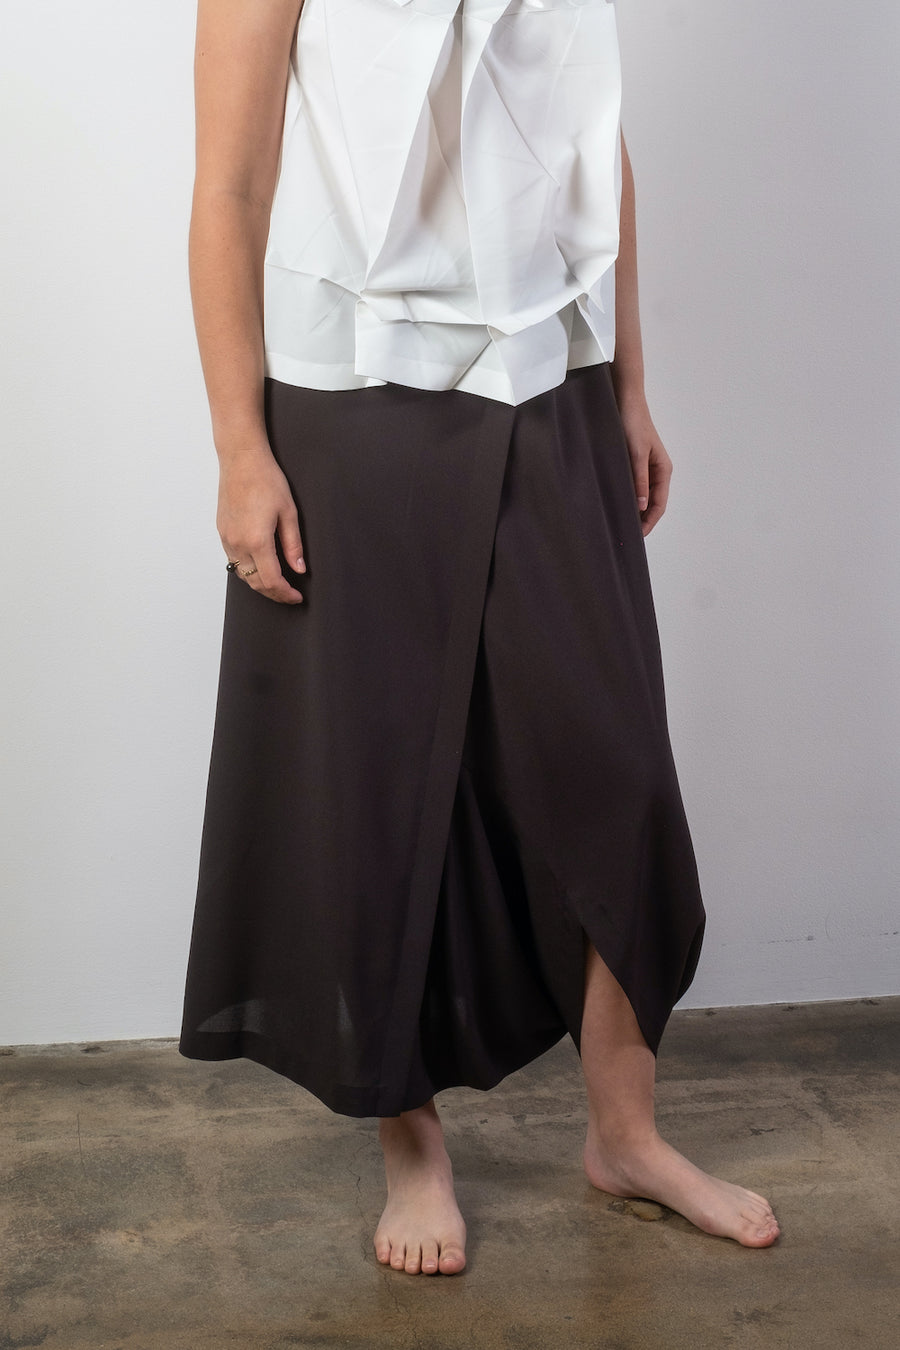 IL88FJ001 issey miyake sleeveless top shirt origami white silver poly polyester pleat pants pleats pleated women's women noodle stories